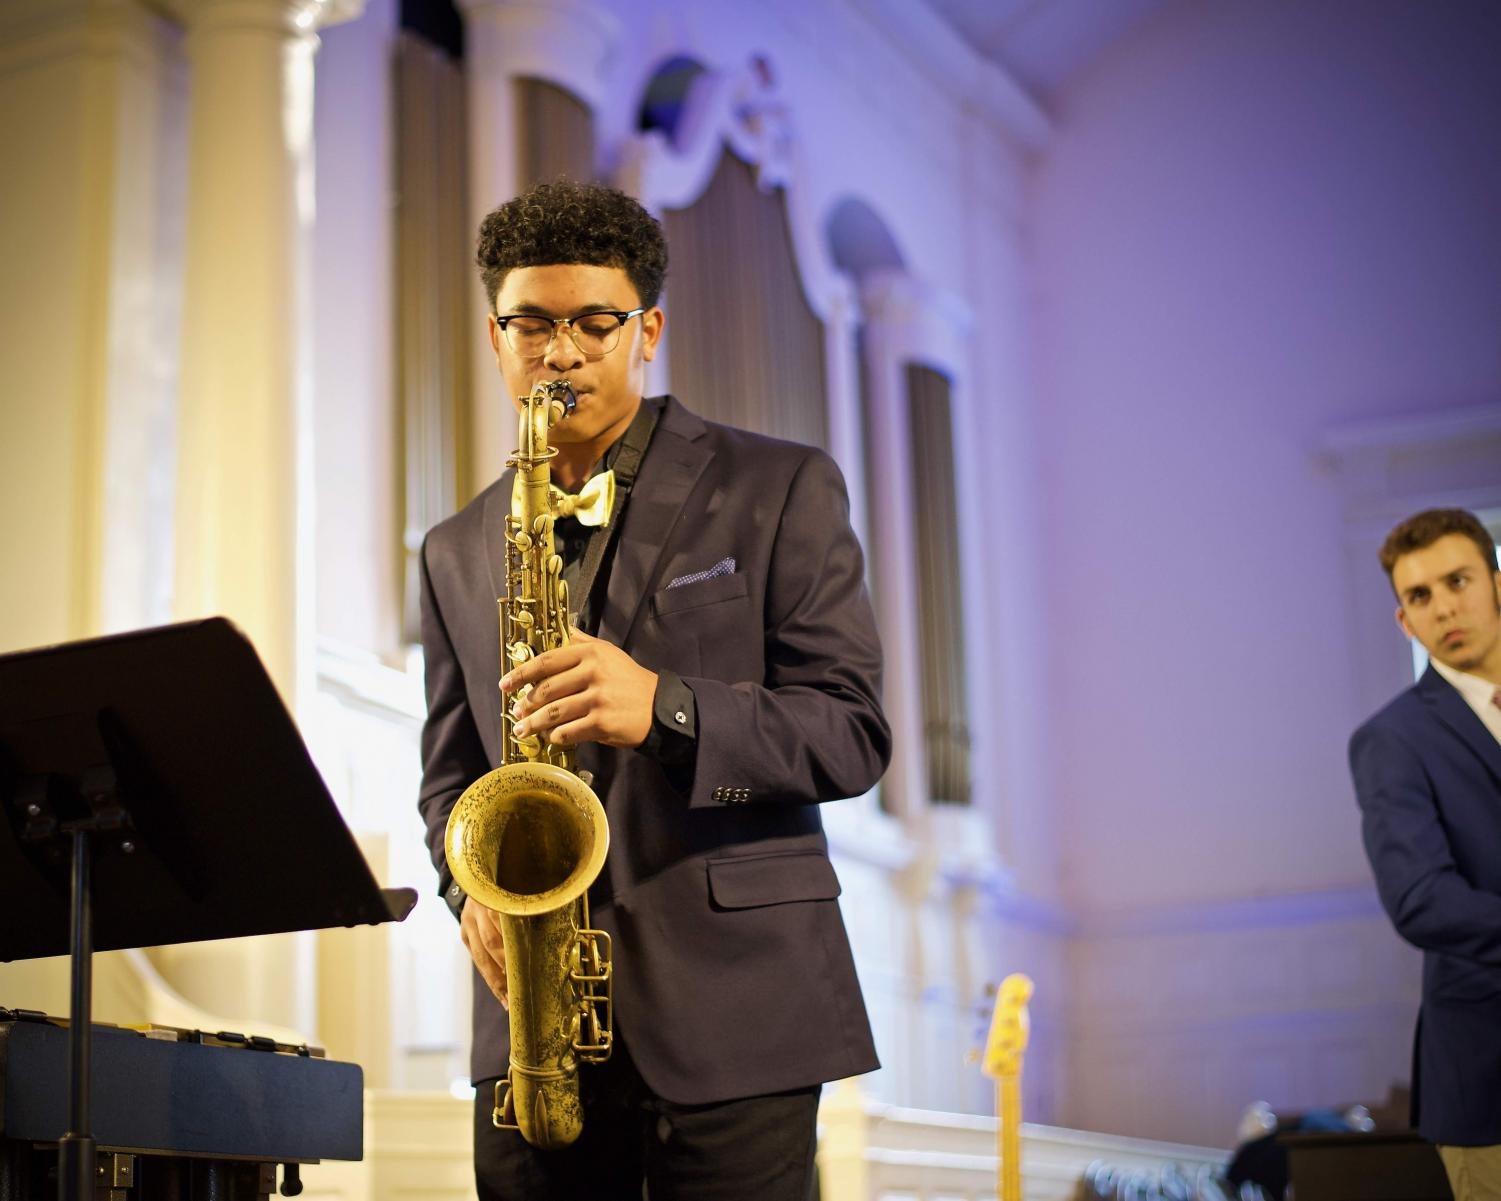 LOVING THE JAZZ: Junior Jay Hammond performs on the saxophone while at the Governor's Honors Program this past summer for jazz.